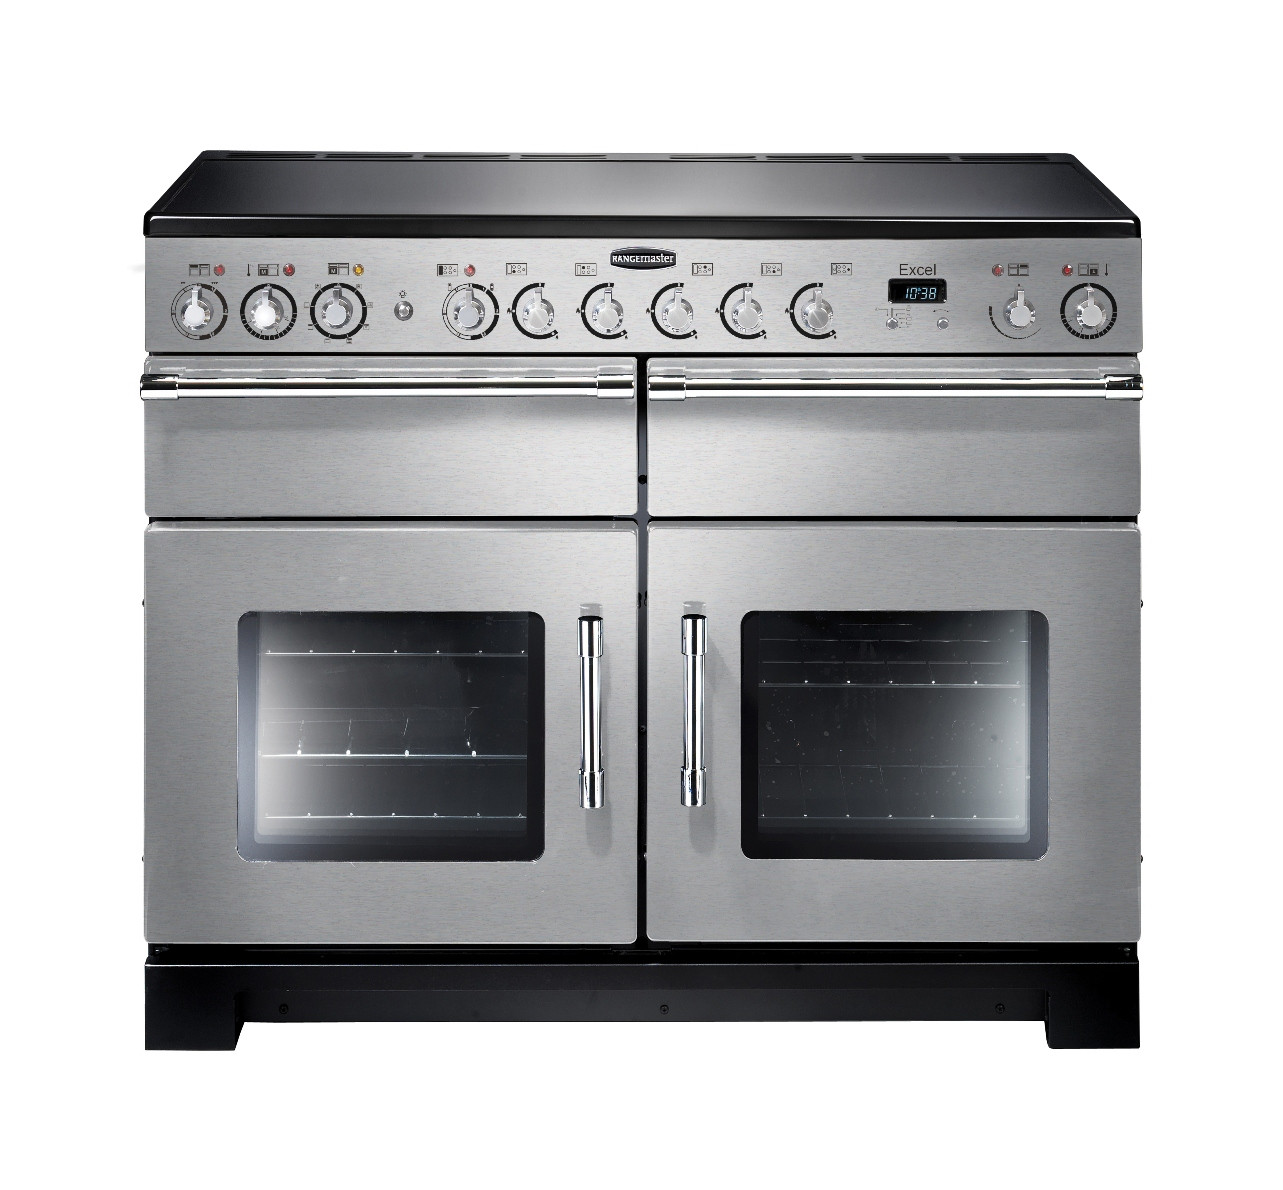 Rangemaster Excel 110 Induction Stainless Steel Range Cooker 97420